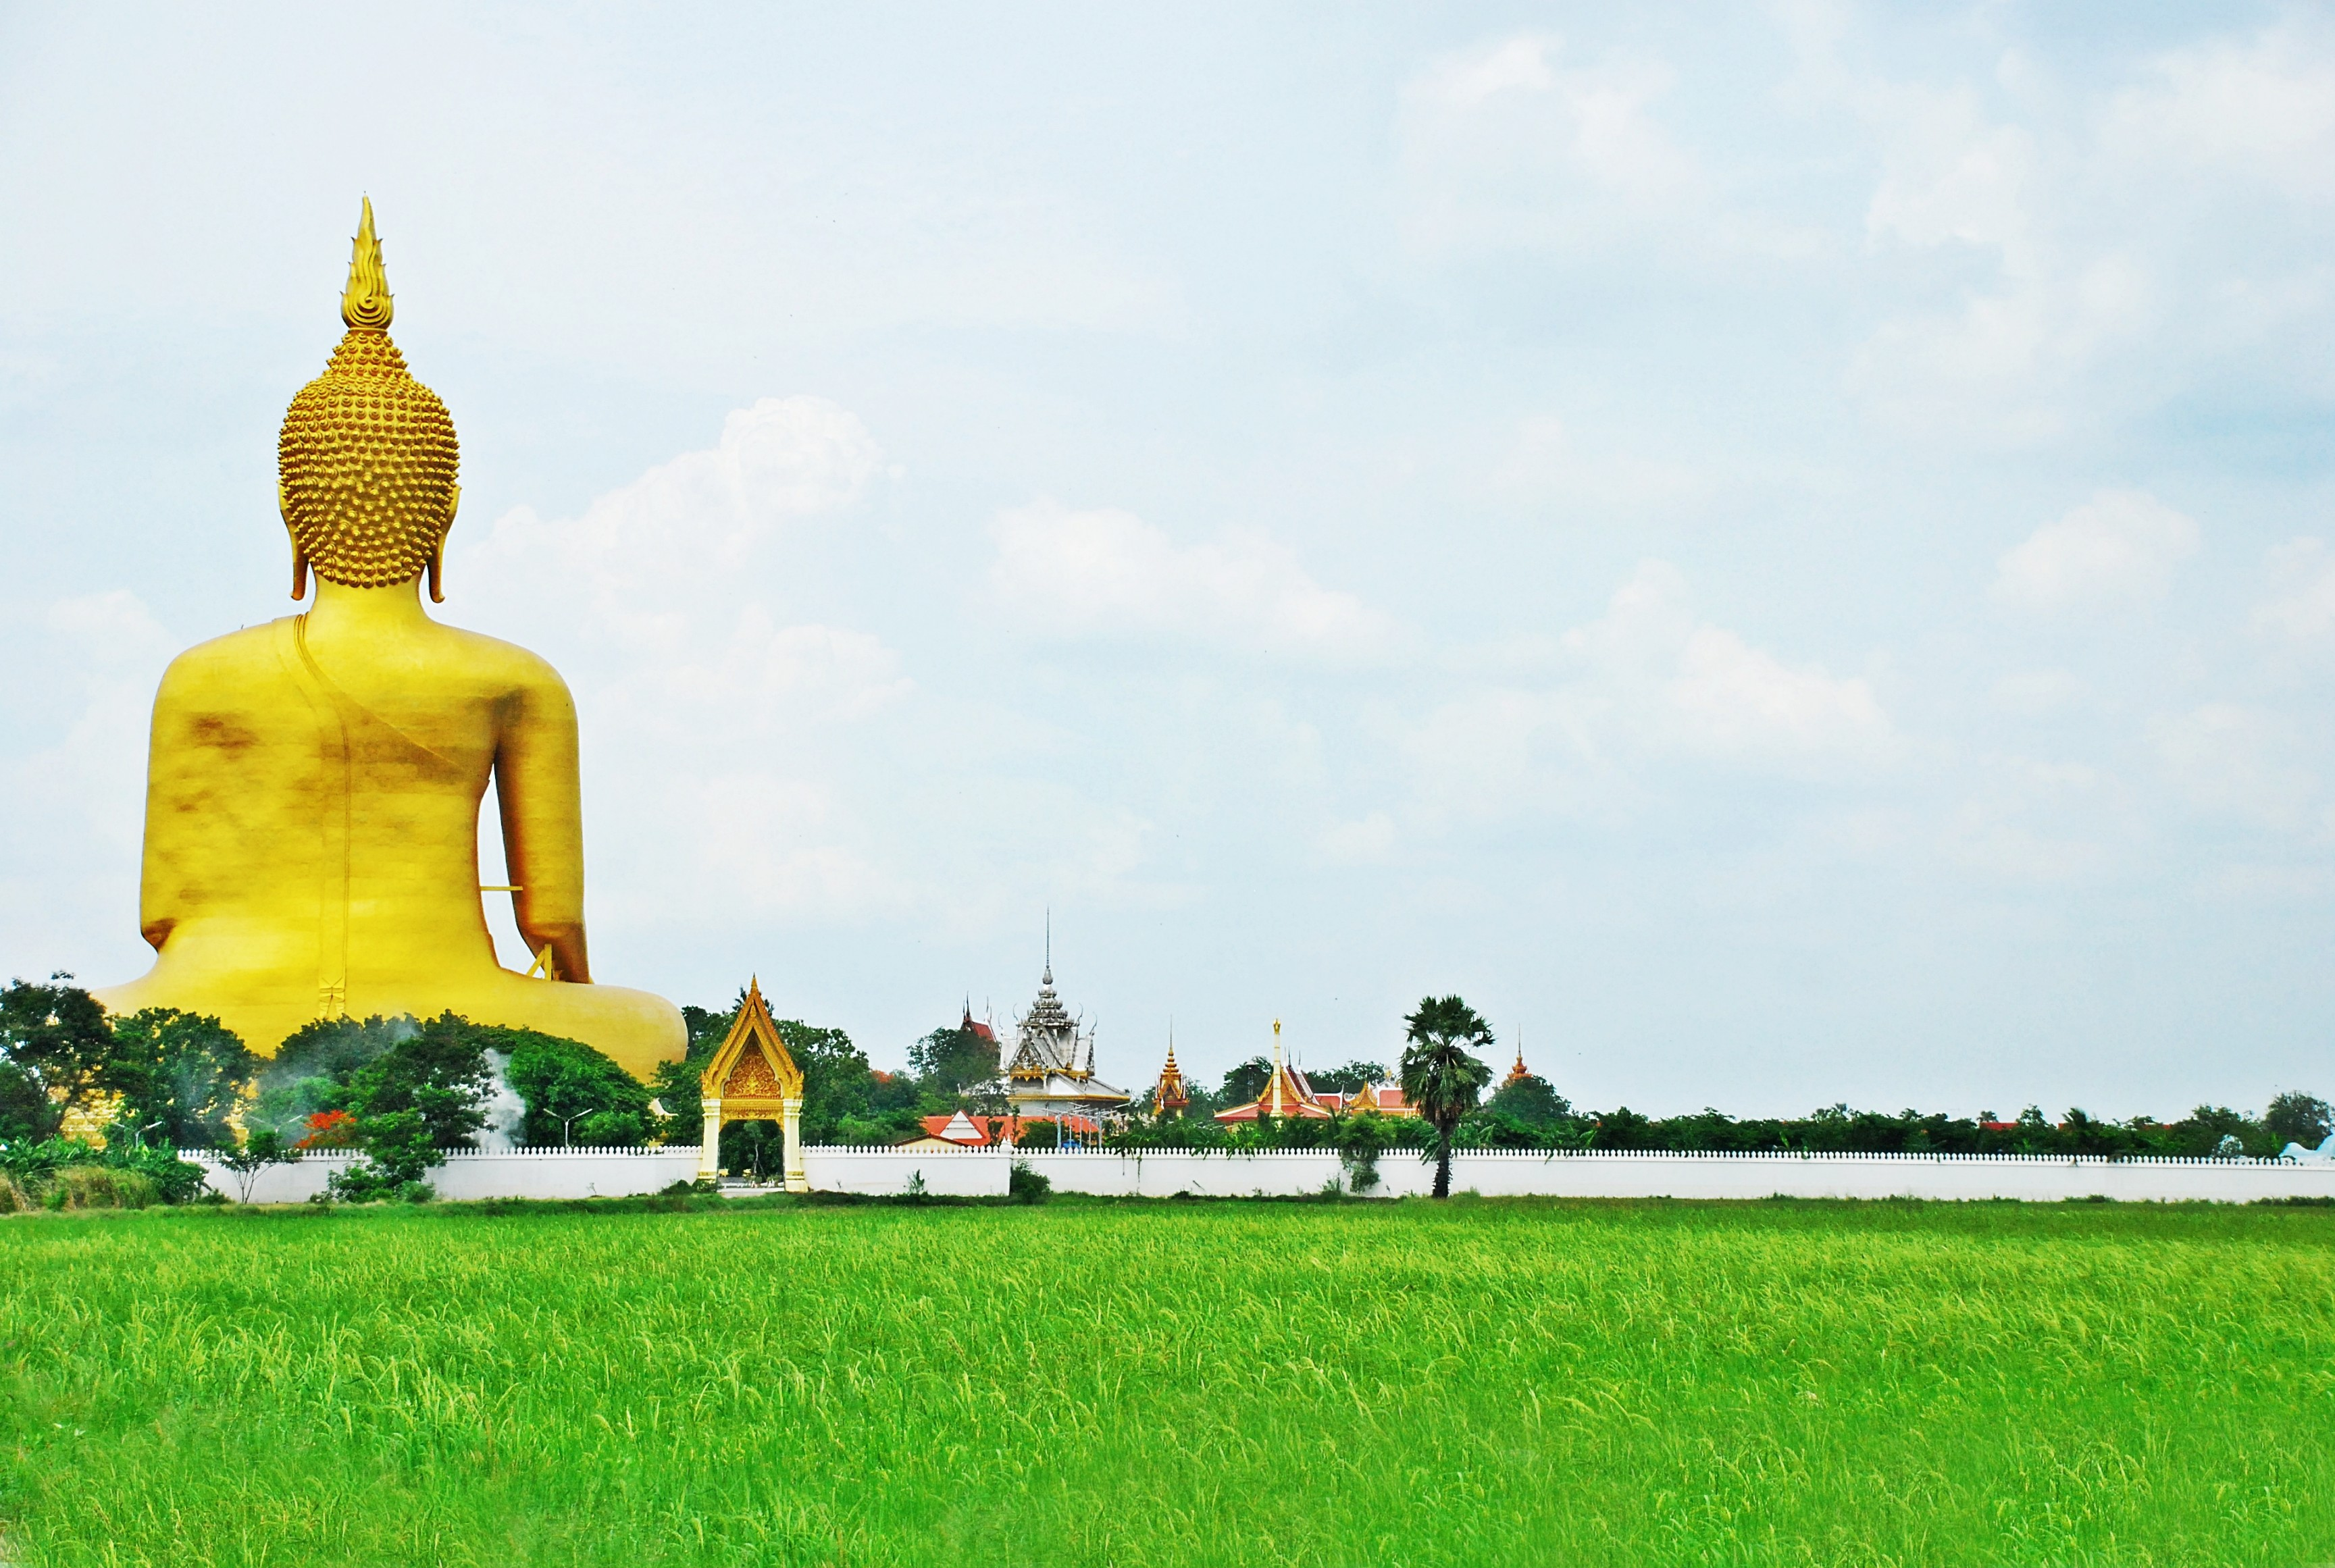 Paddy fields and Buddhism